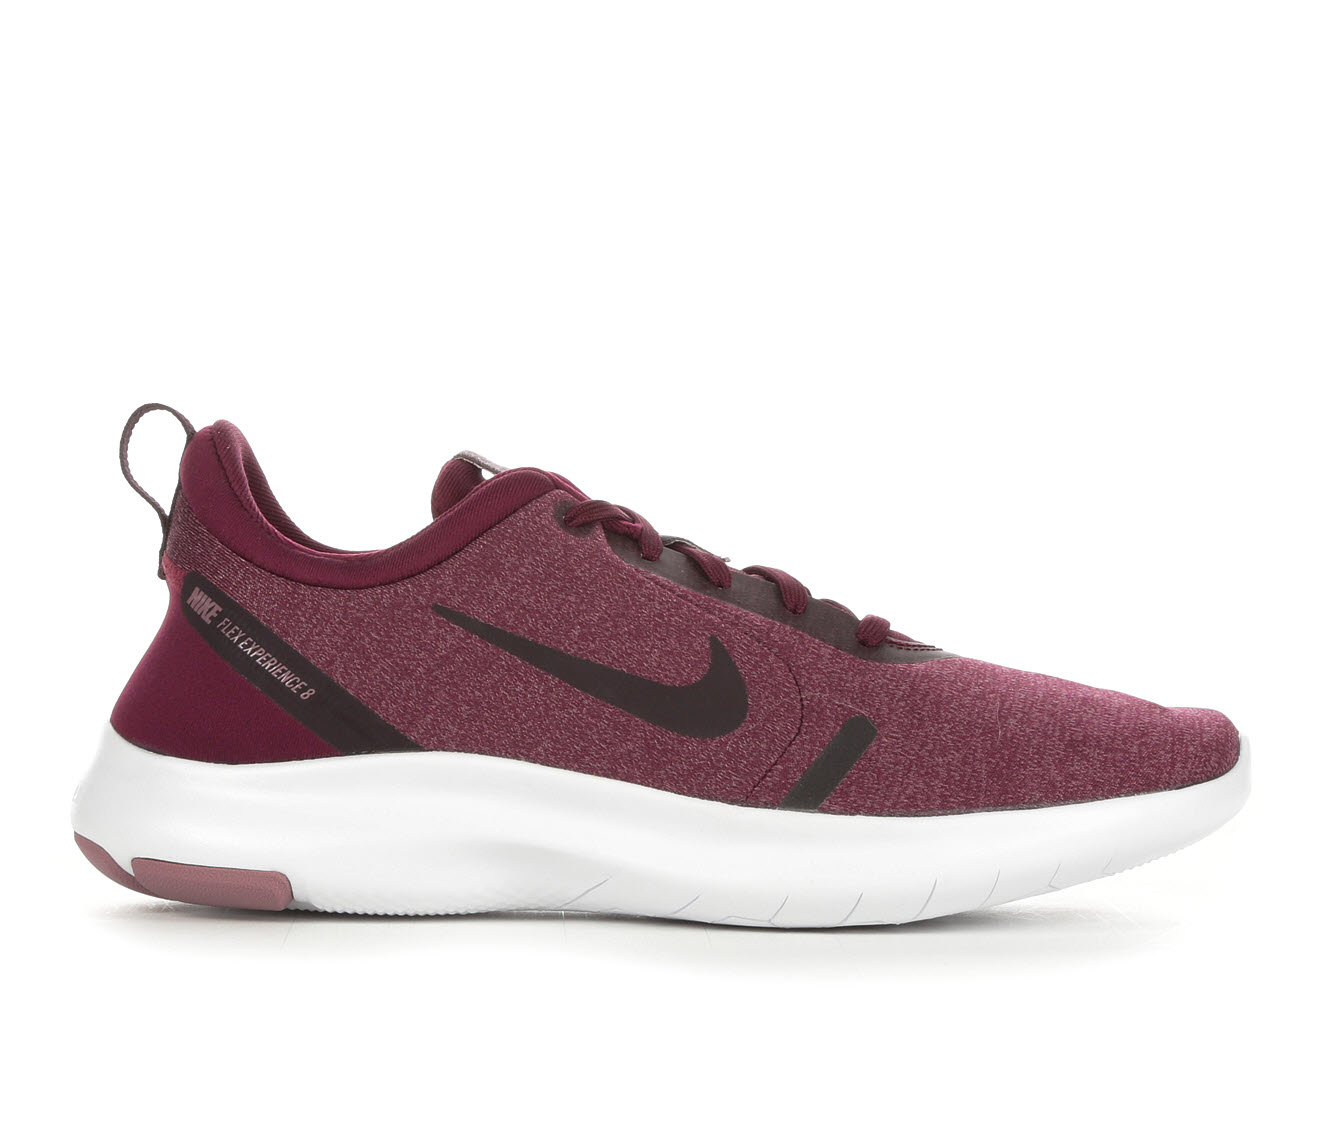 Nike Flex Experience Run 8 Women's Athletic Shoe (Red)